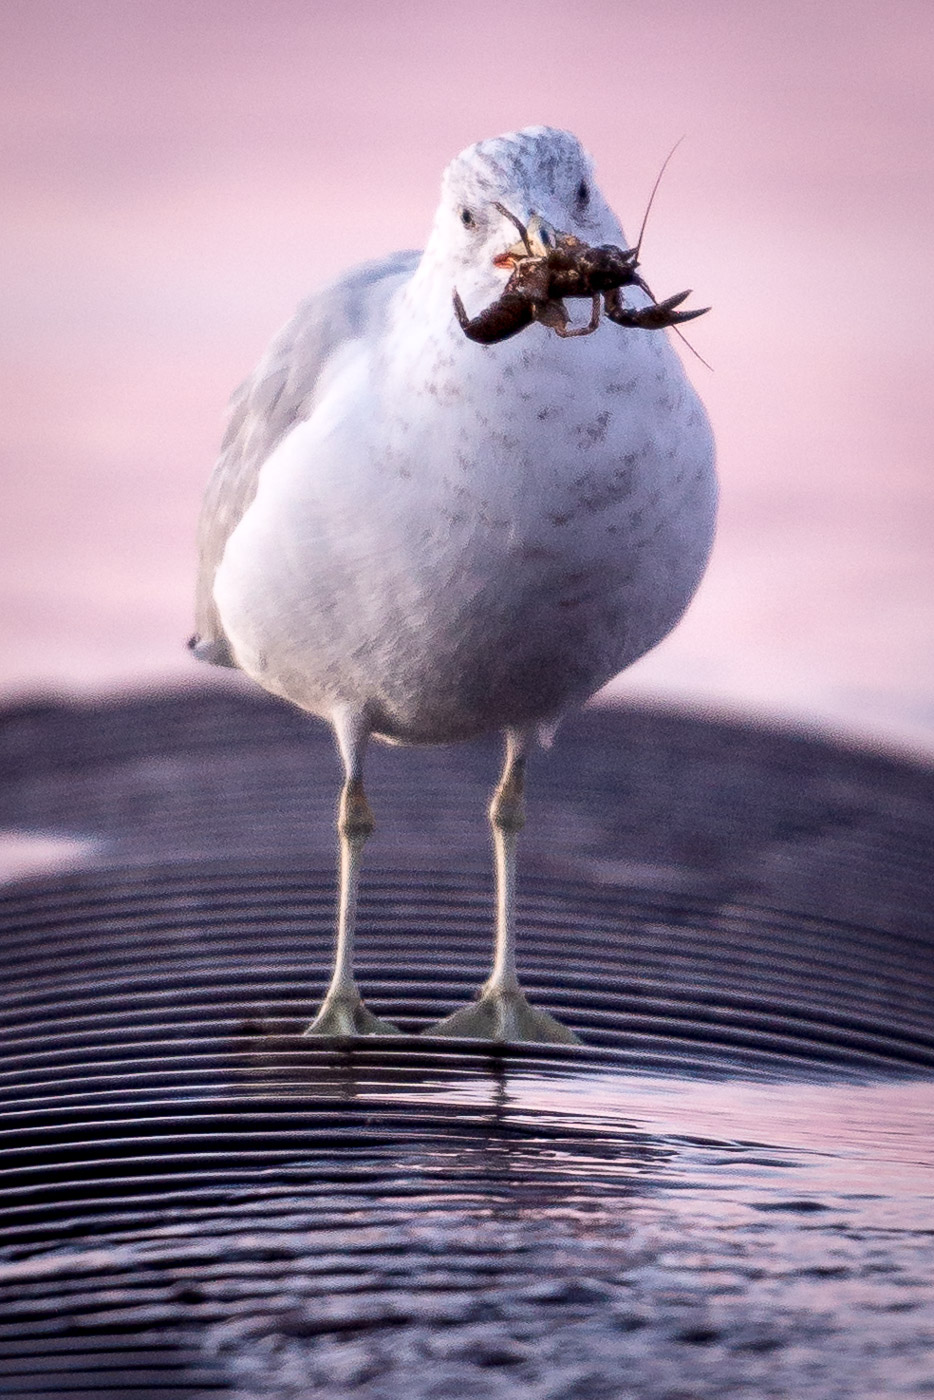 Seagull grasping a crayfish in its beak.